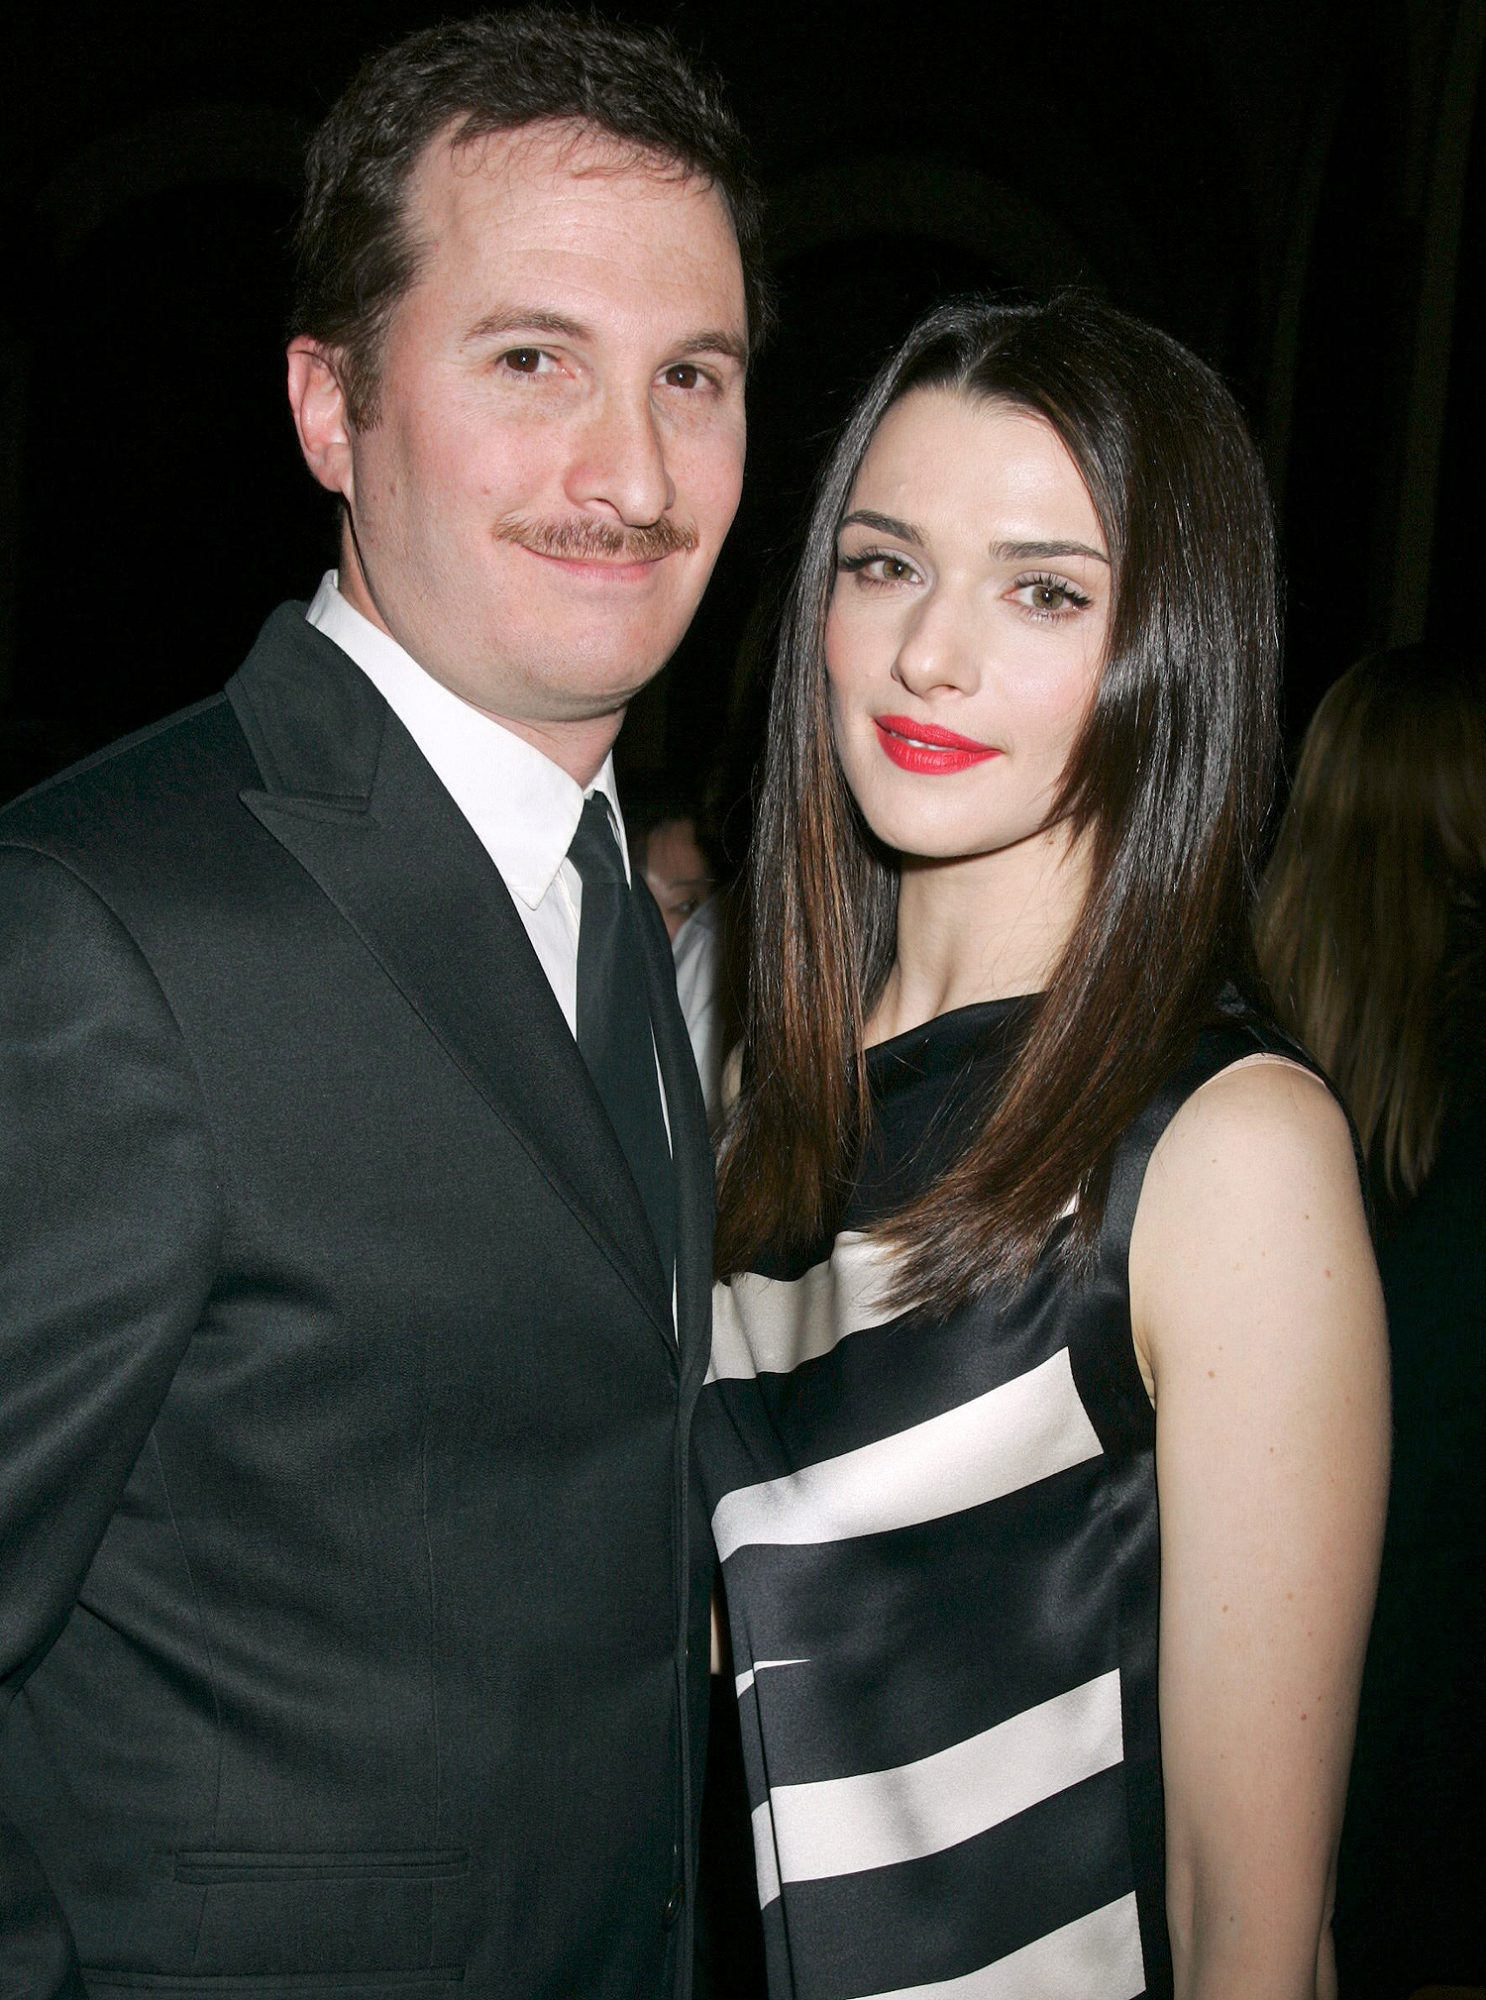 18th Annual Gotham Independent Film Awards, New York, America - 02 Dec 2008